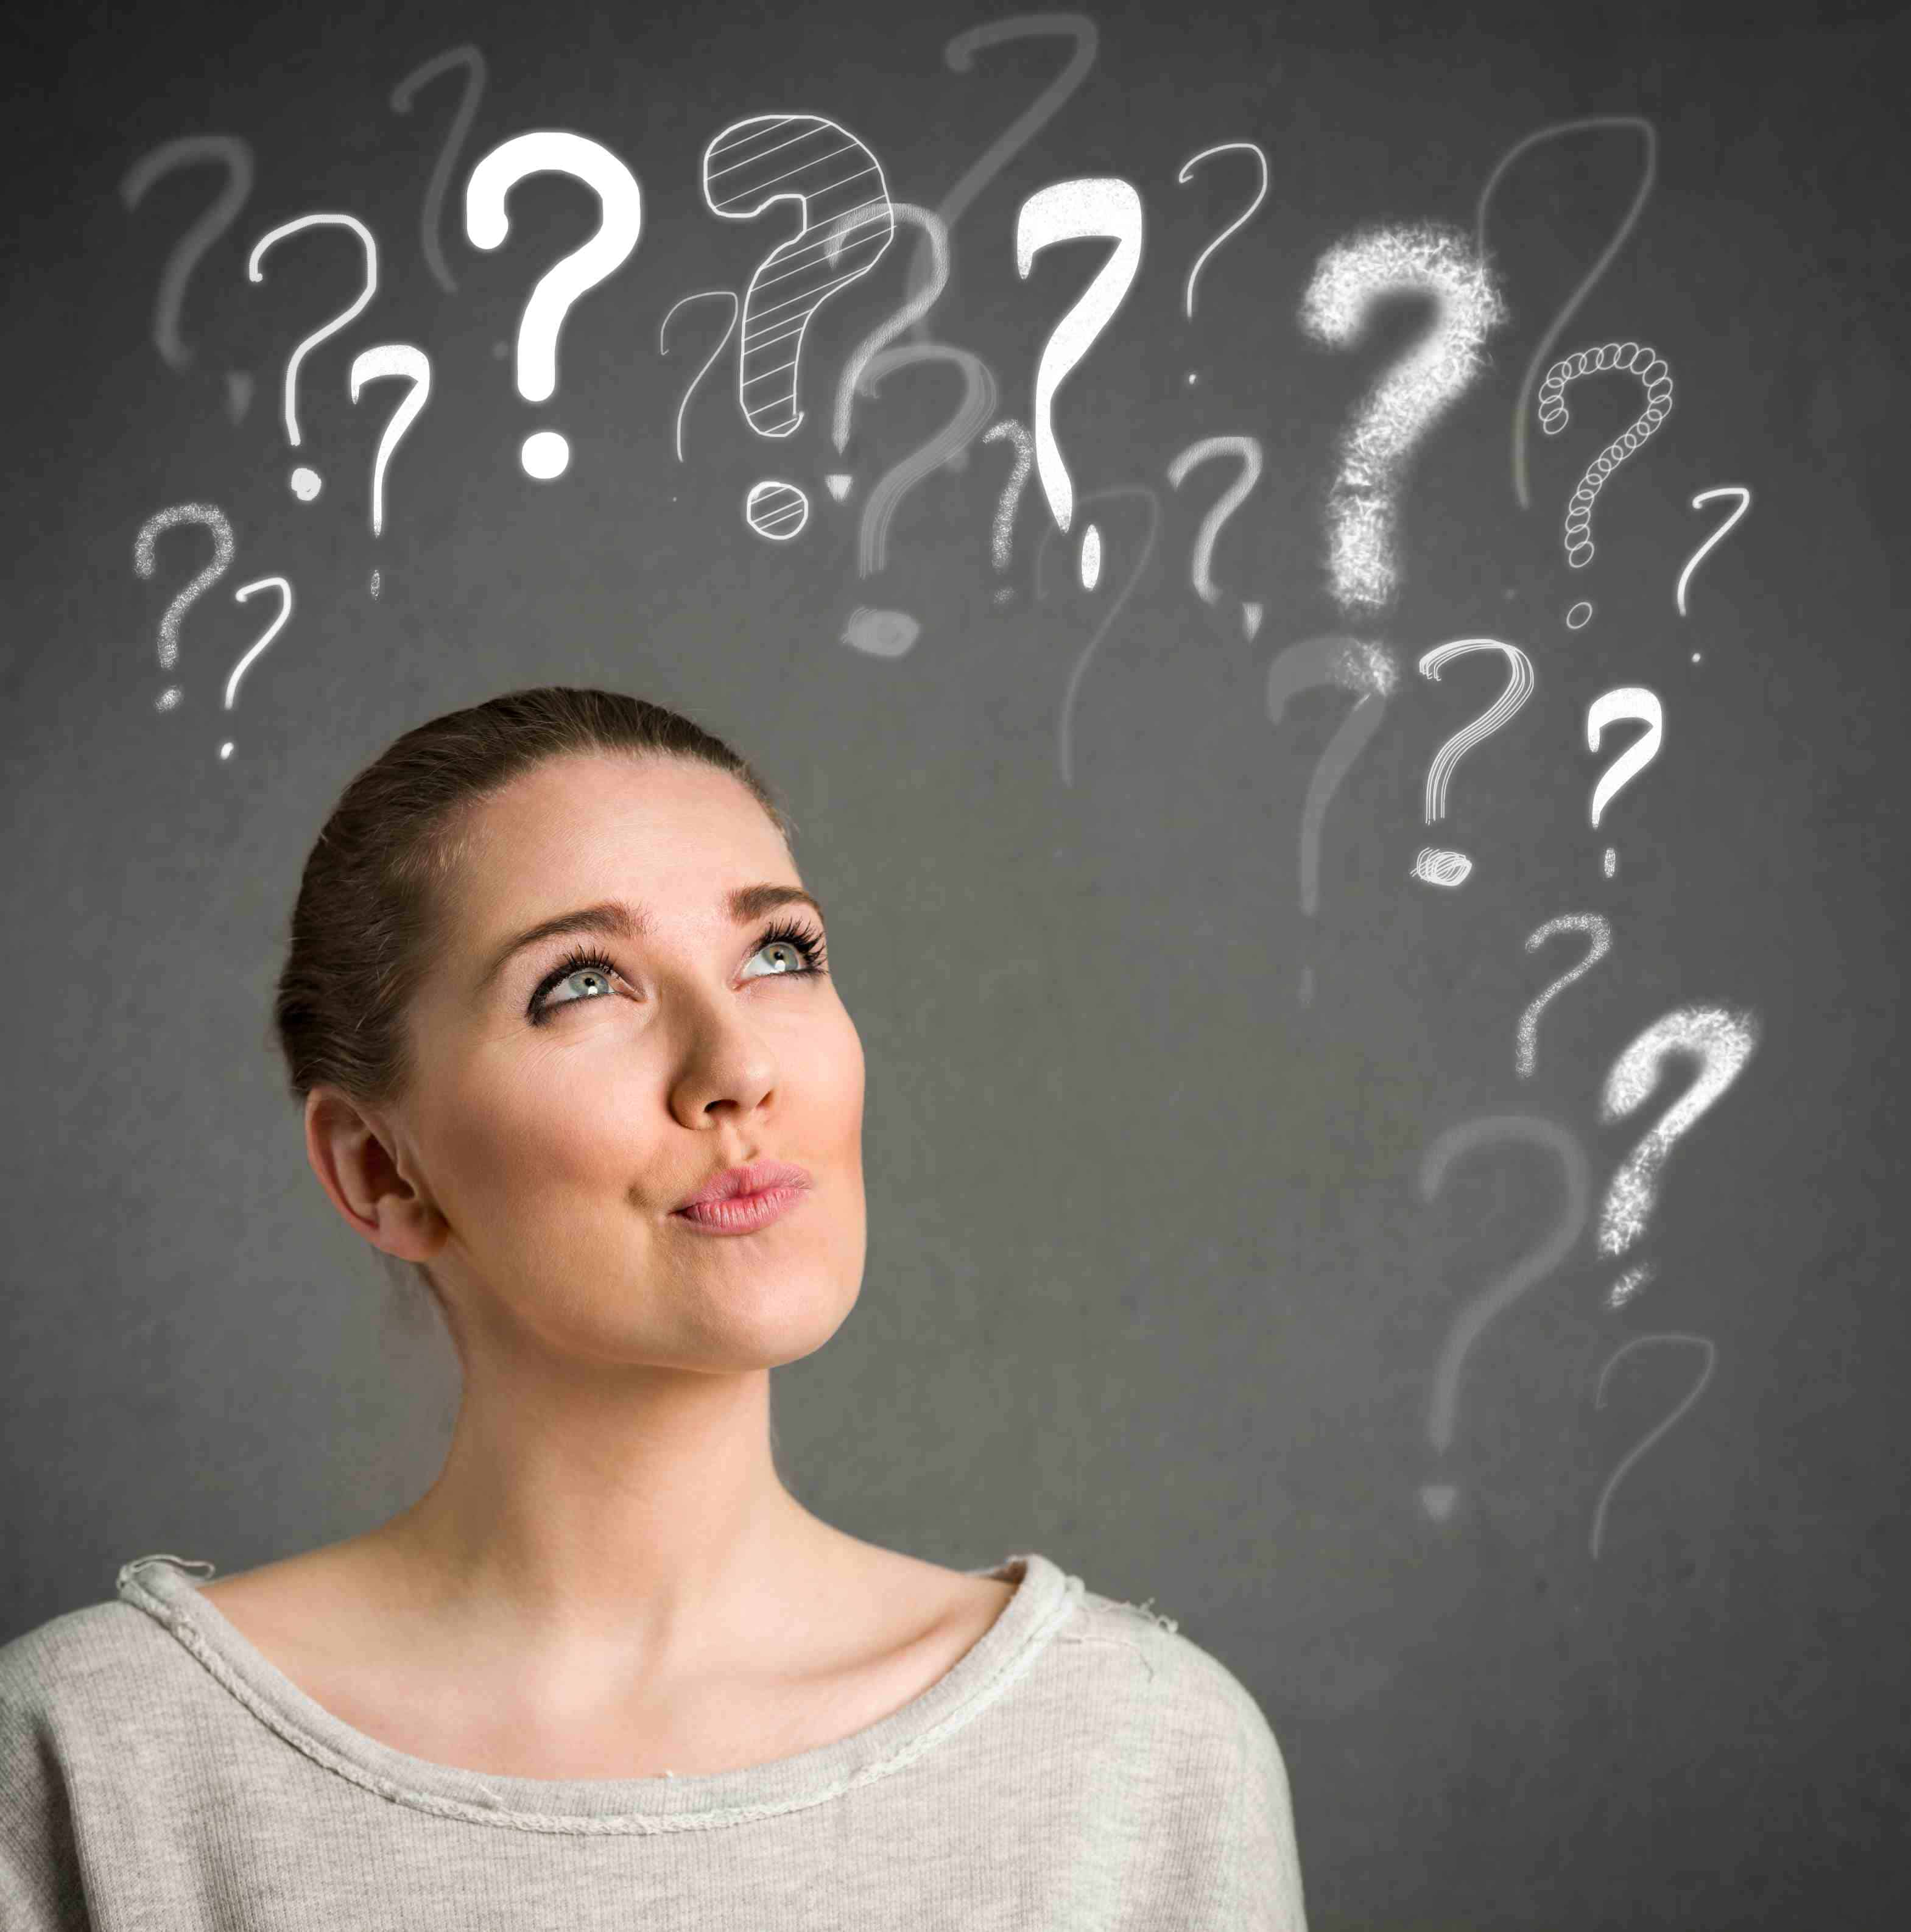 Young woman makes a face and thinking with question marks over head